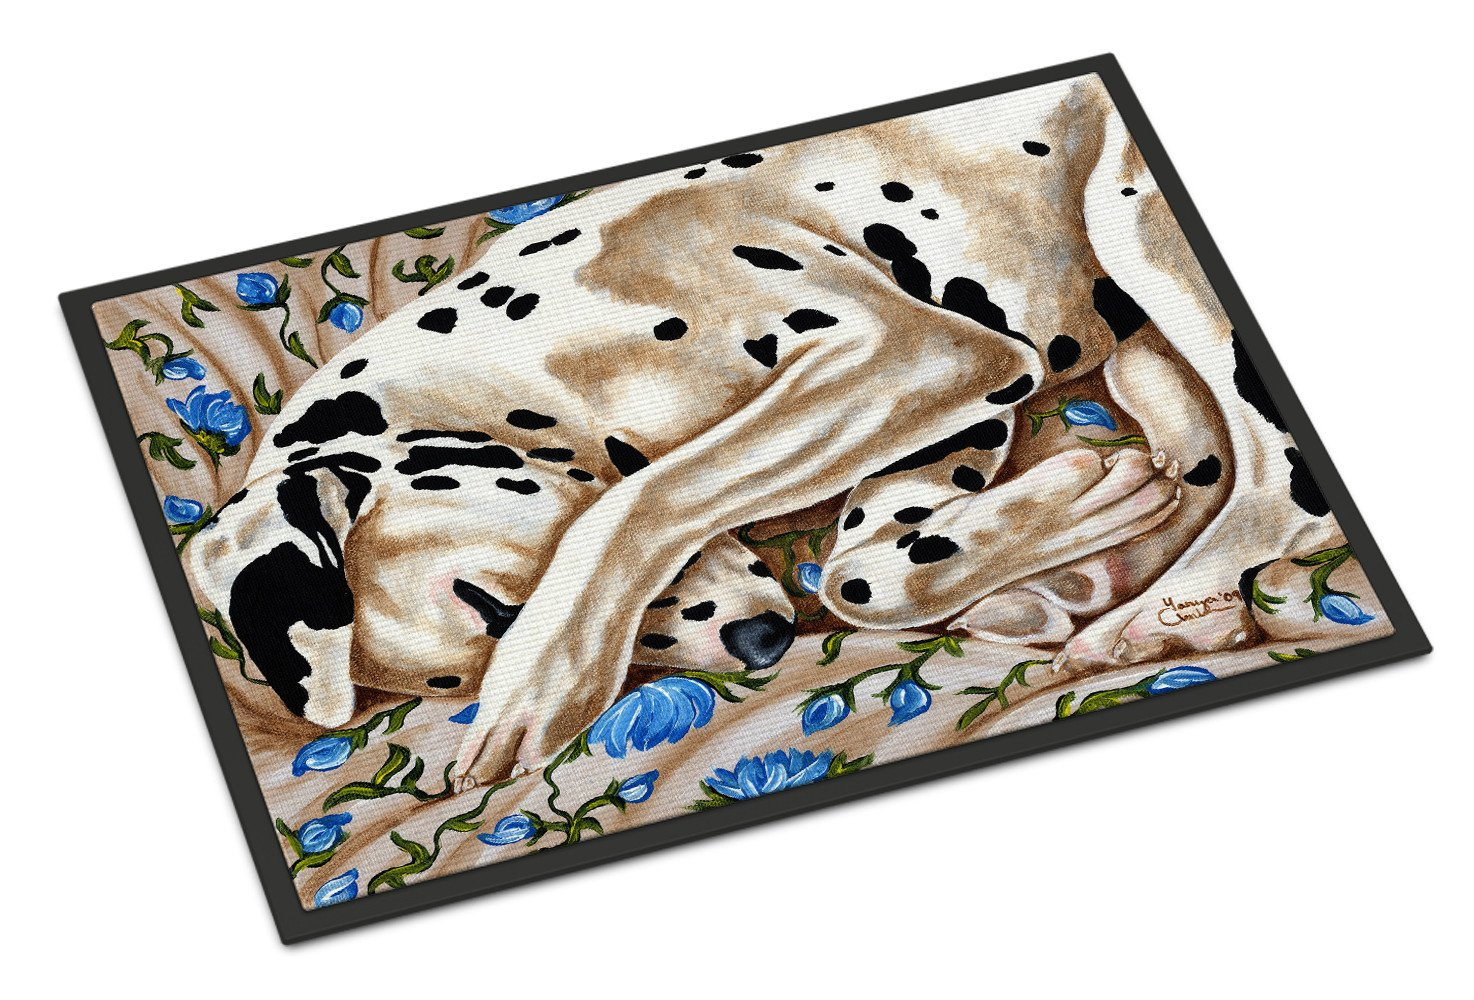 Bed of Roses Dalmatian Indoor or Outdoor Mat 18x27 AMB1407MAT - the-store.com